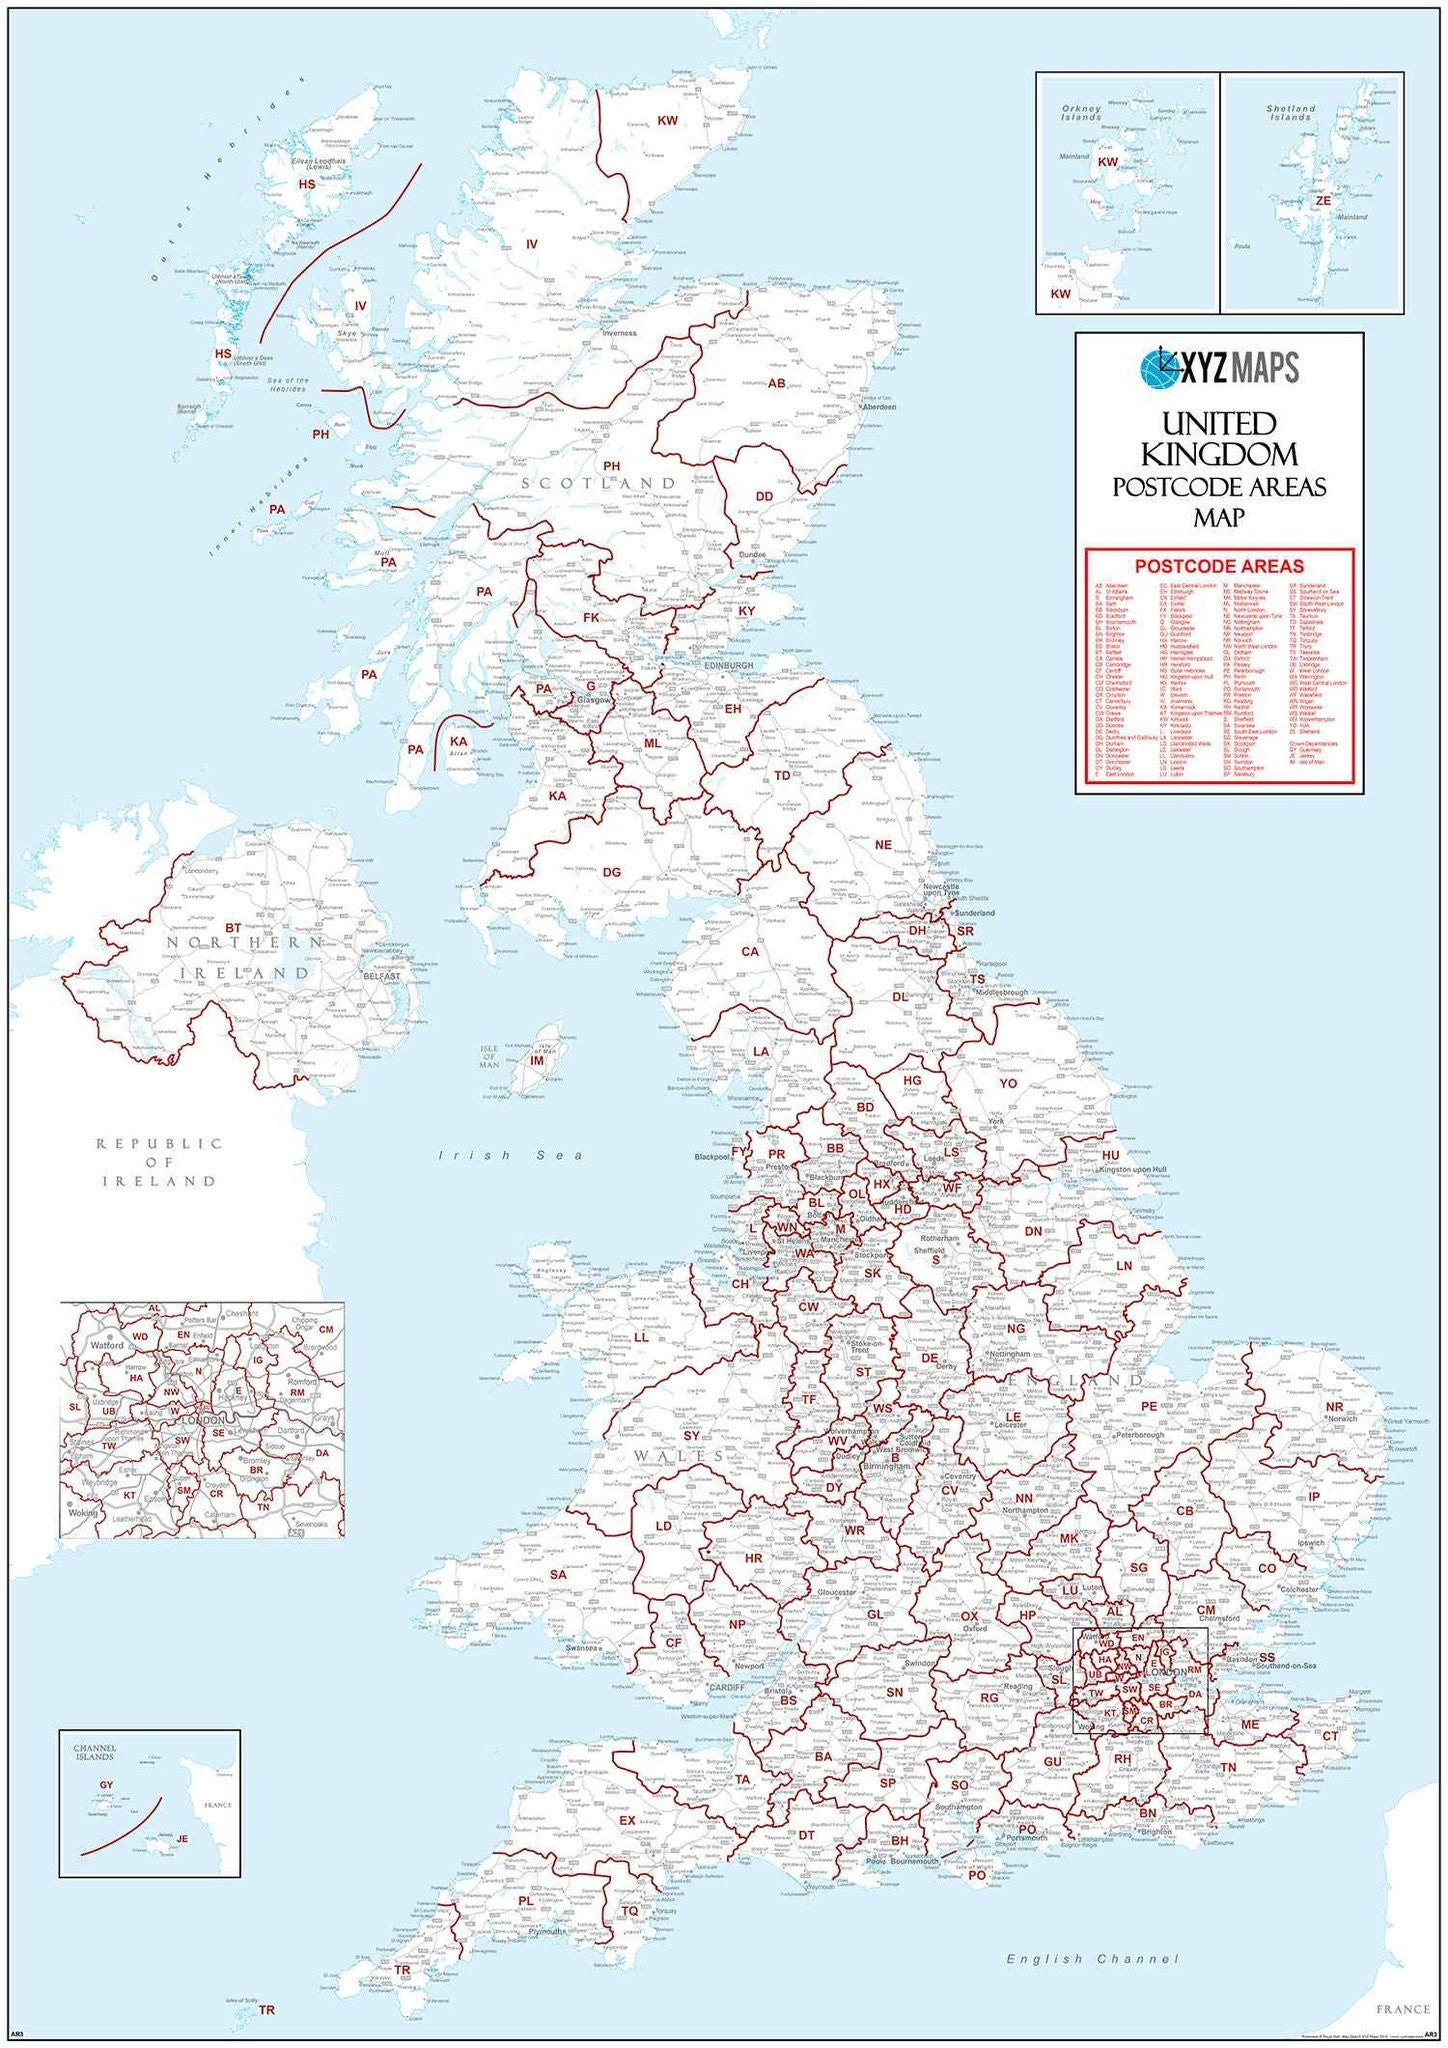 Map Of Uk With Postcodes.Uk Postcode Area Map Gif Or Pdf Download Ar3 Map Logic